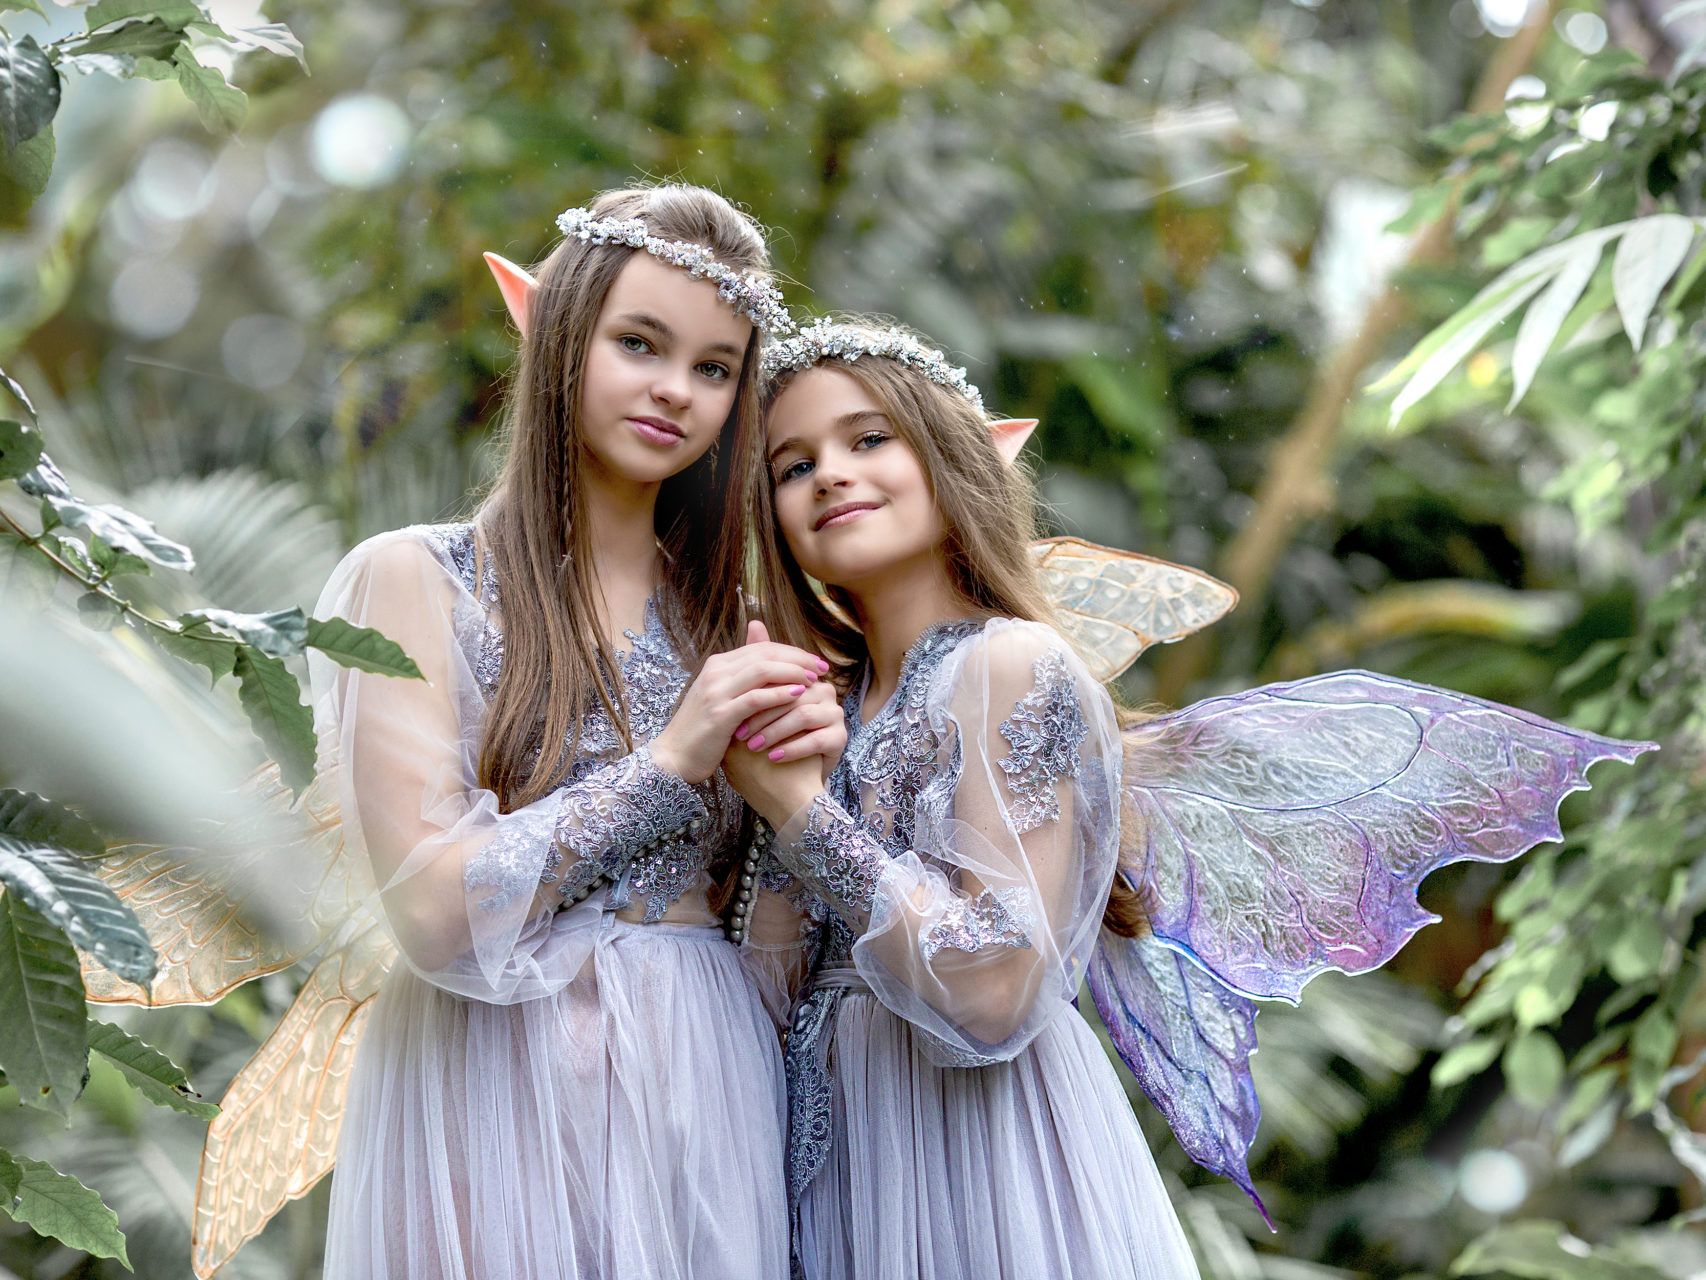 Beautiful Elves in the Garden of Eden